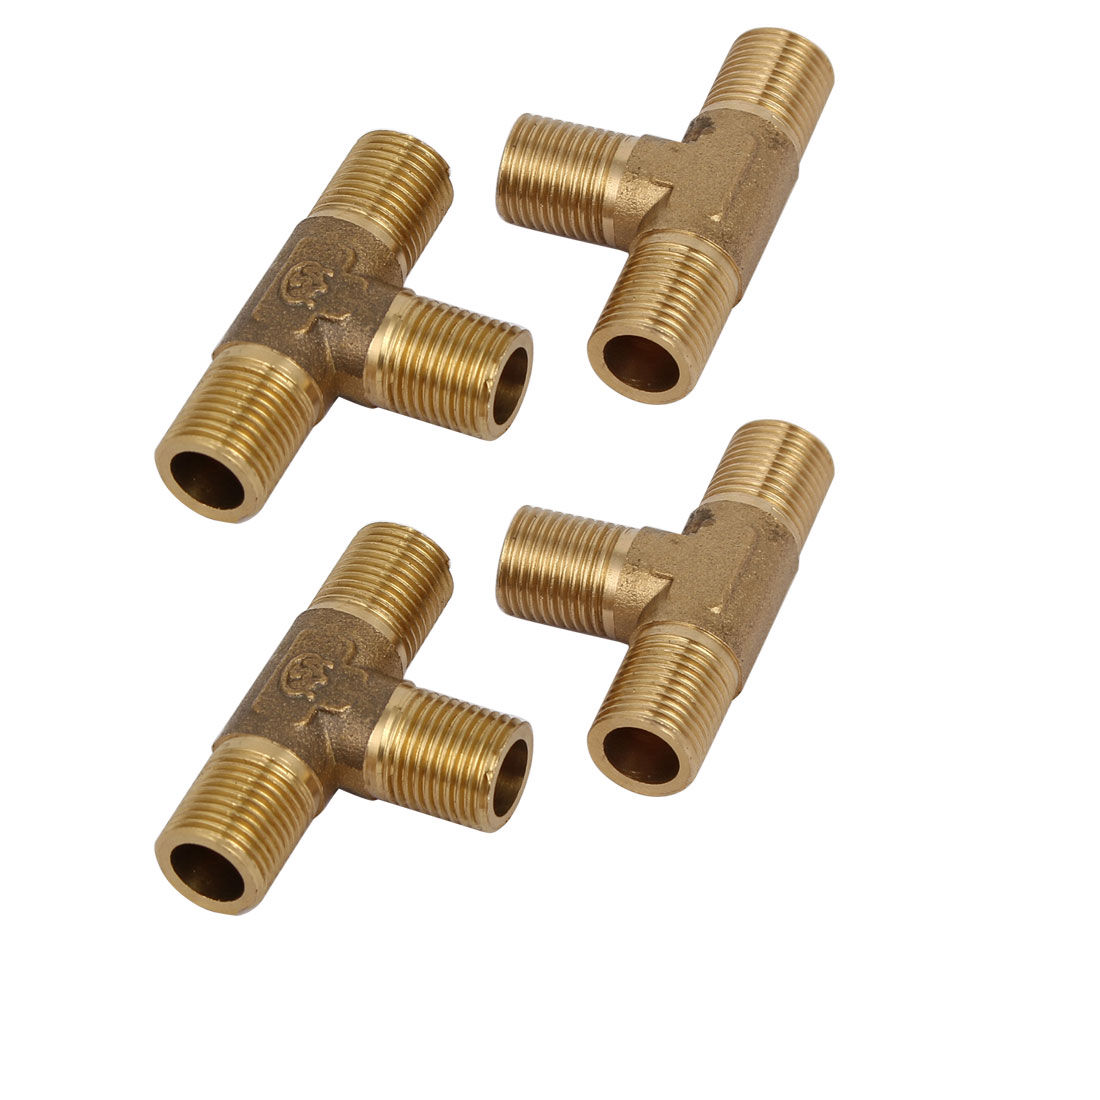 Unique Bargains1/8BSP Male Thread Brass T Shape Tube Pipe Connecting Fittings Connectors 4pcs